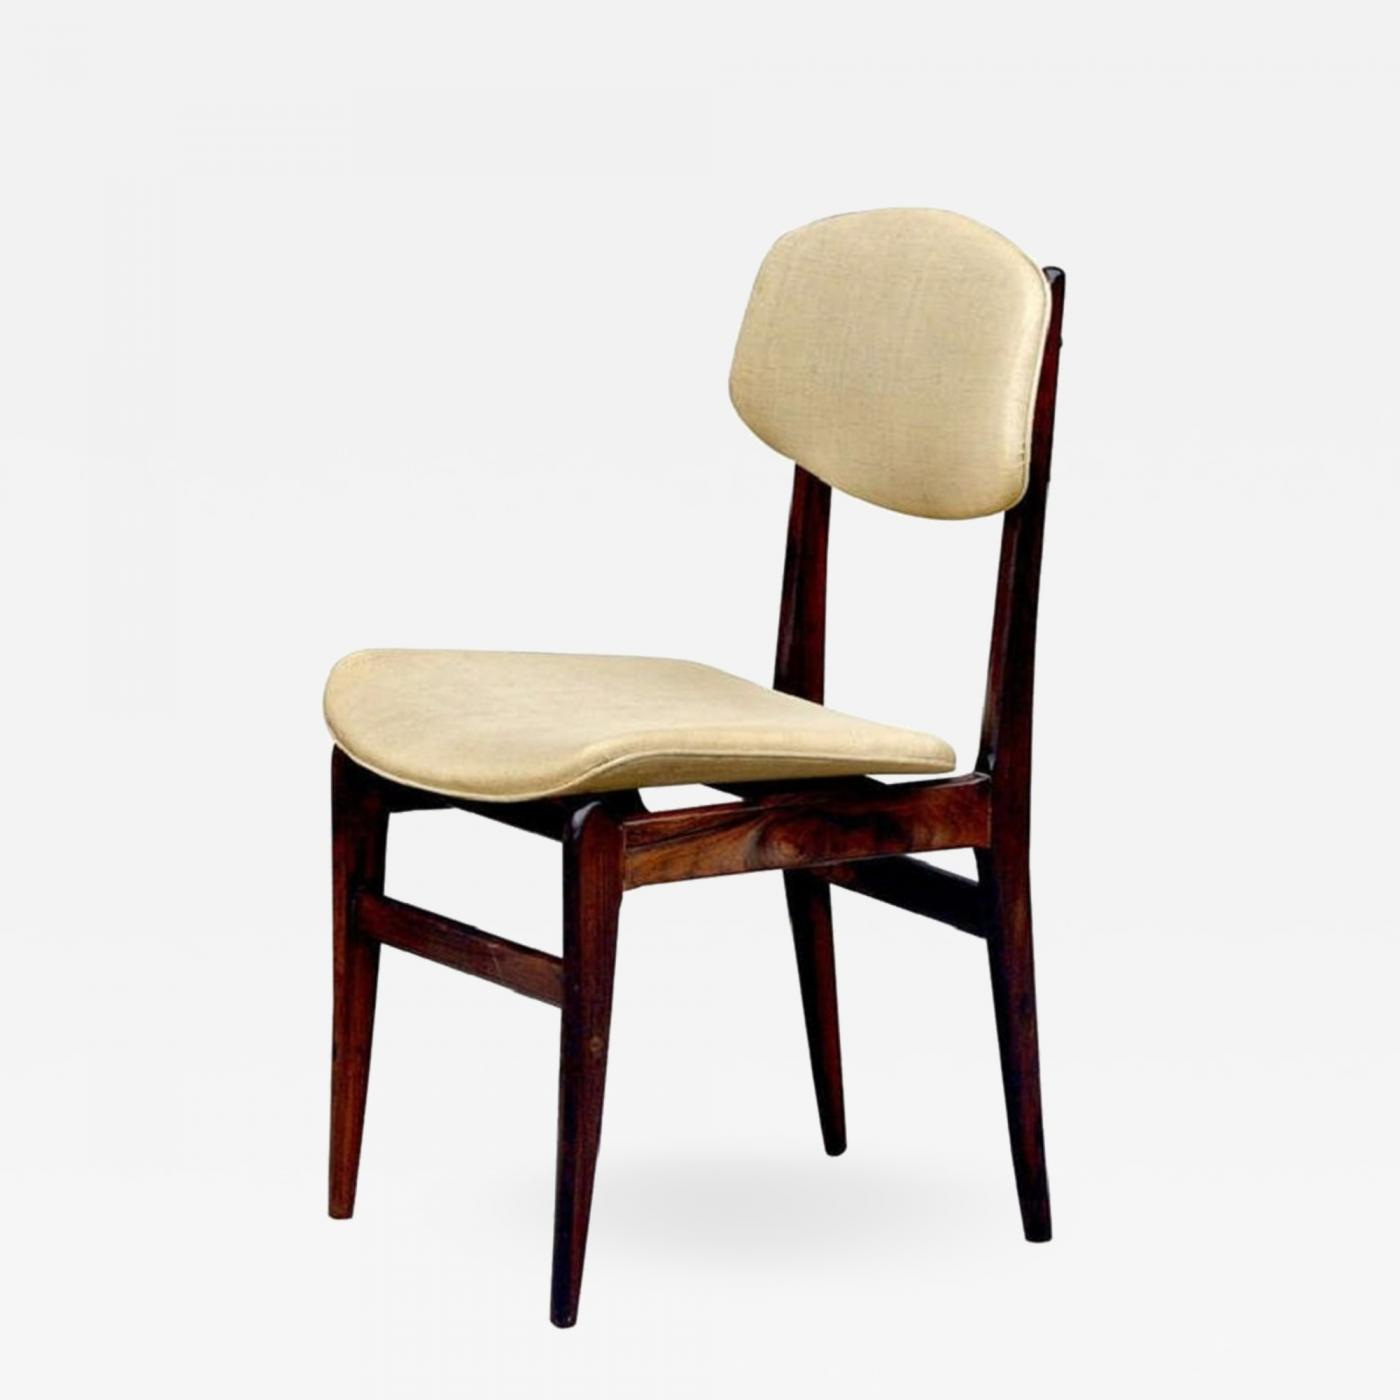 Listings / Furniture / Seating / Side Chairs & Elegant Brazilian Rosewood Side Chair